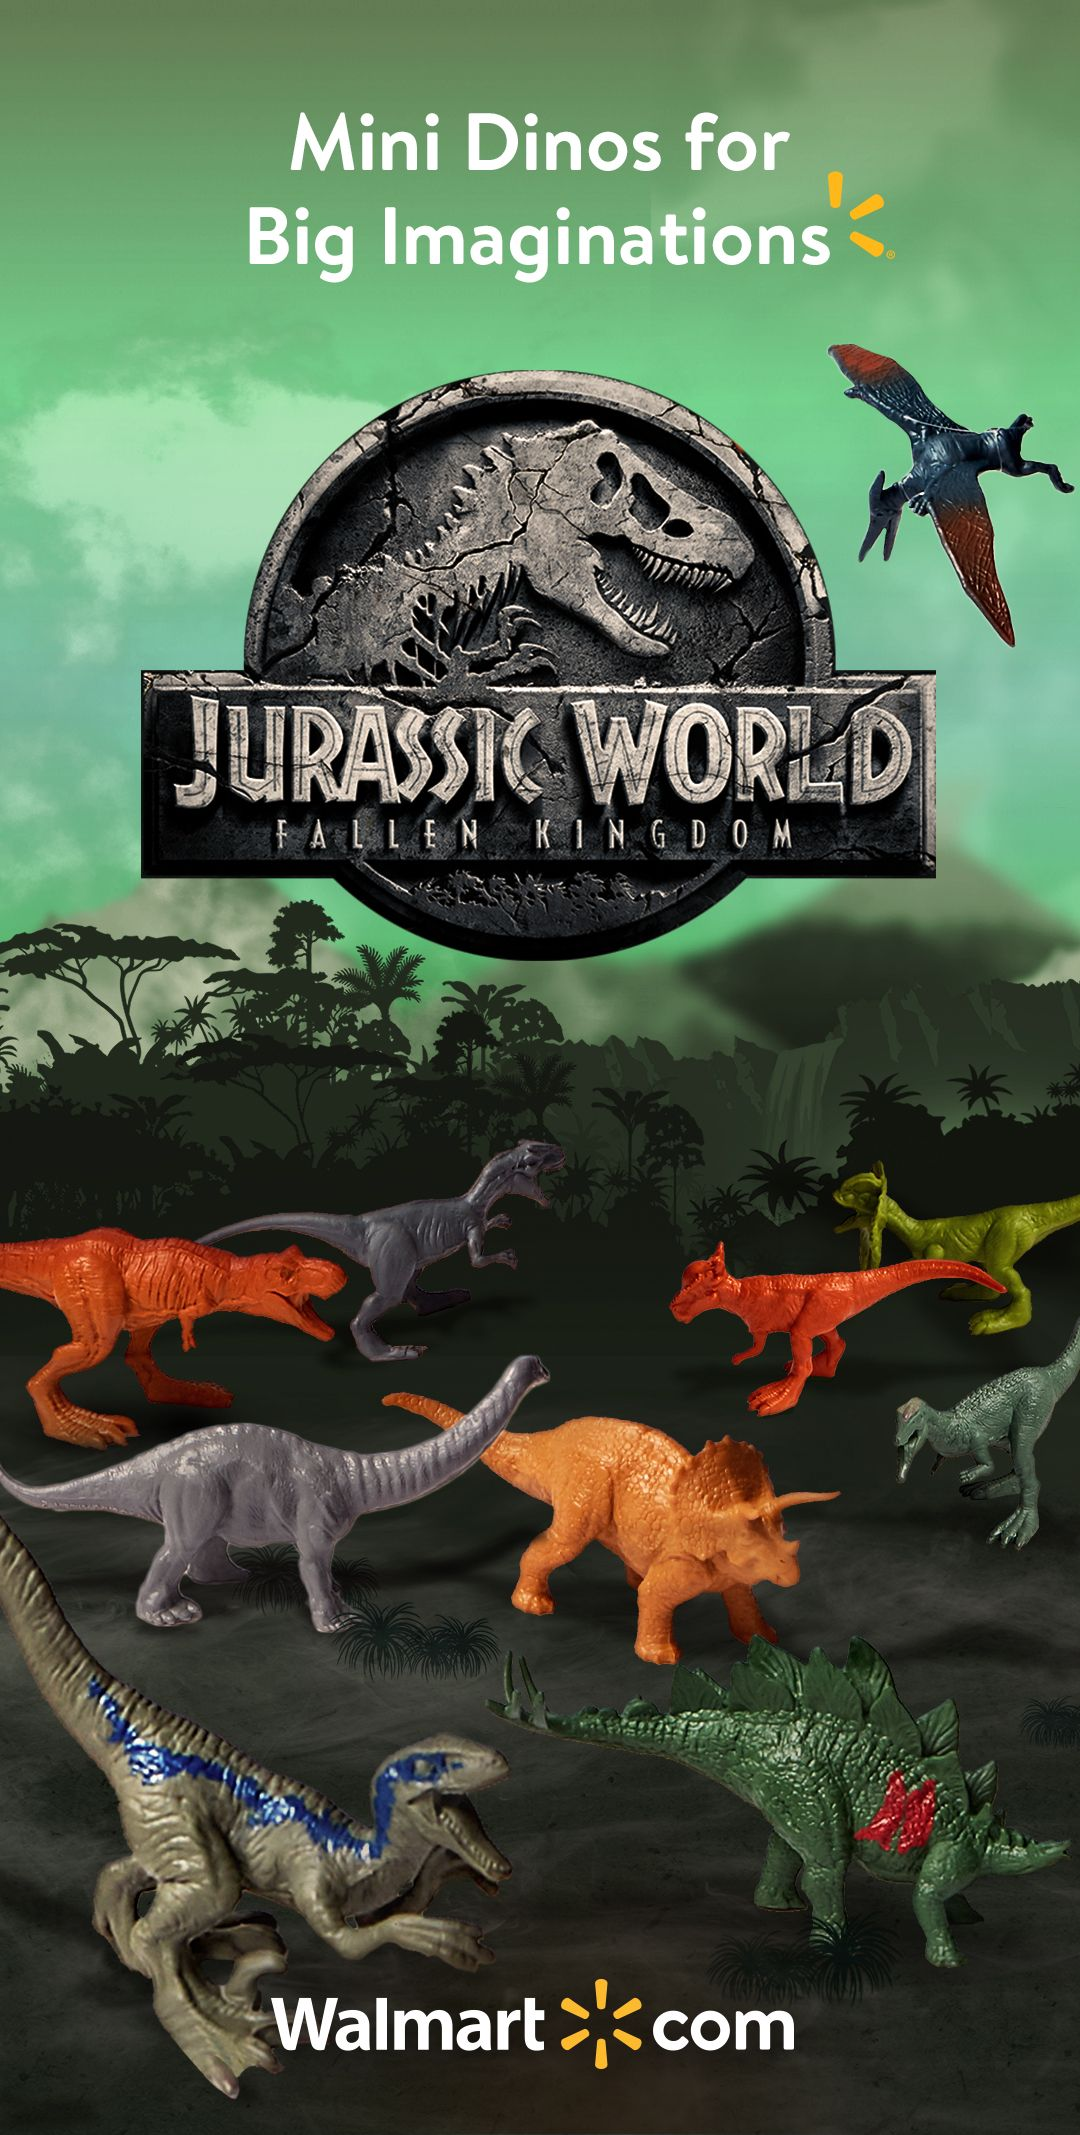 Rule Your Own Jurassic World Fallen Kingdom With The Mini Dino 15 Pack Only At Walmart